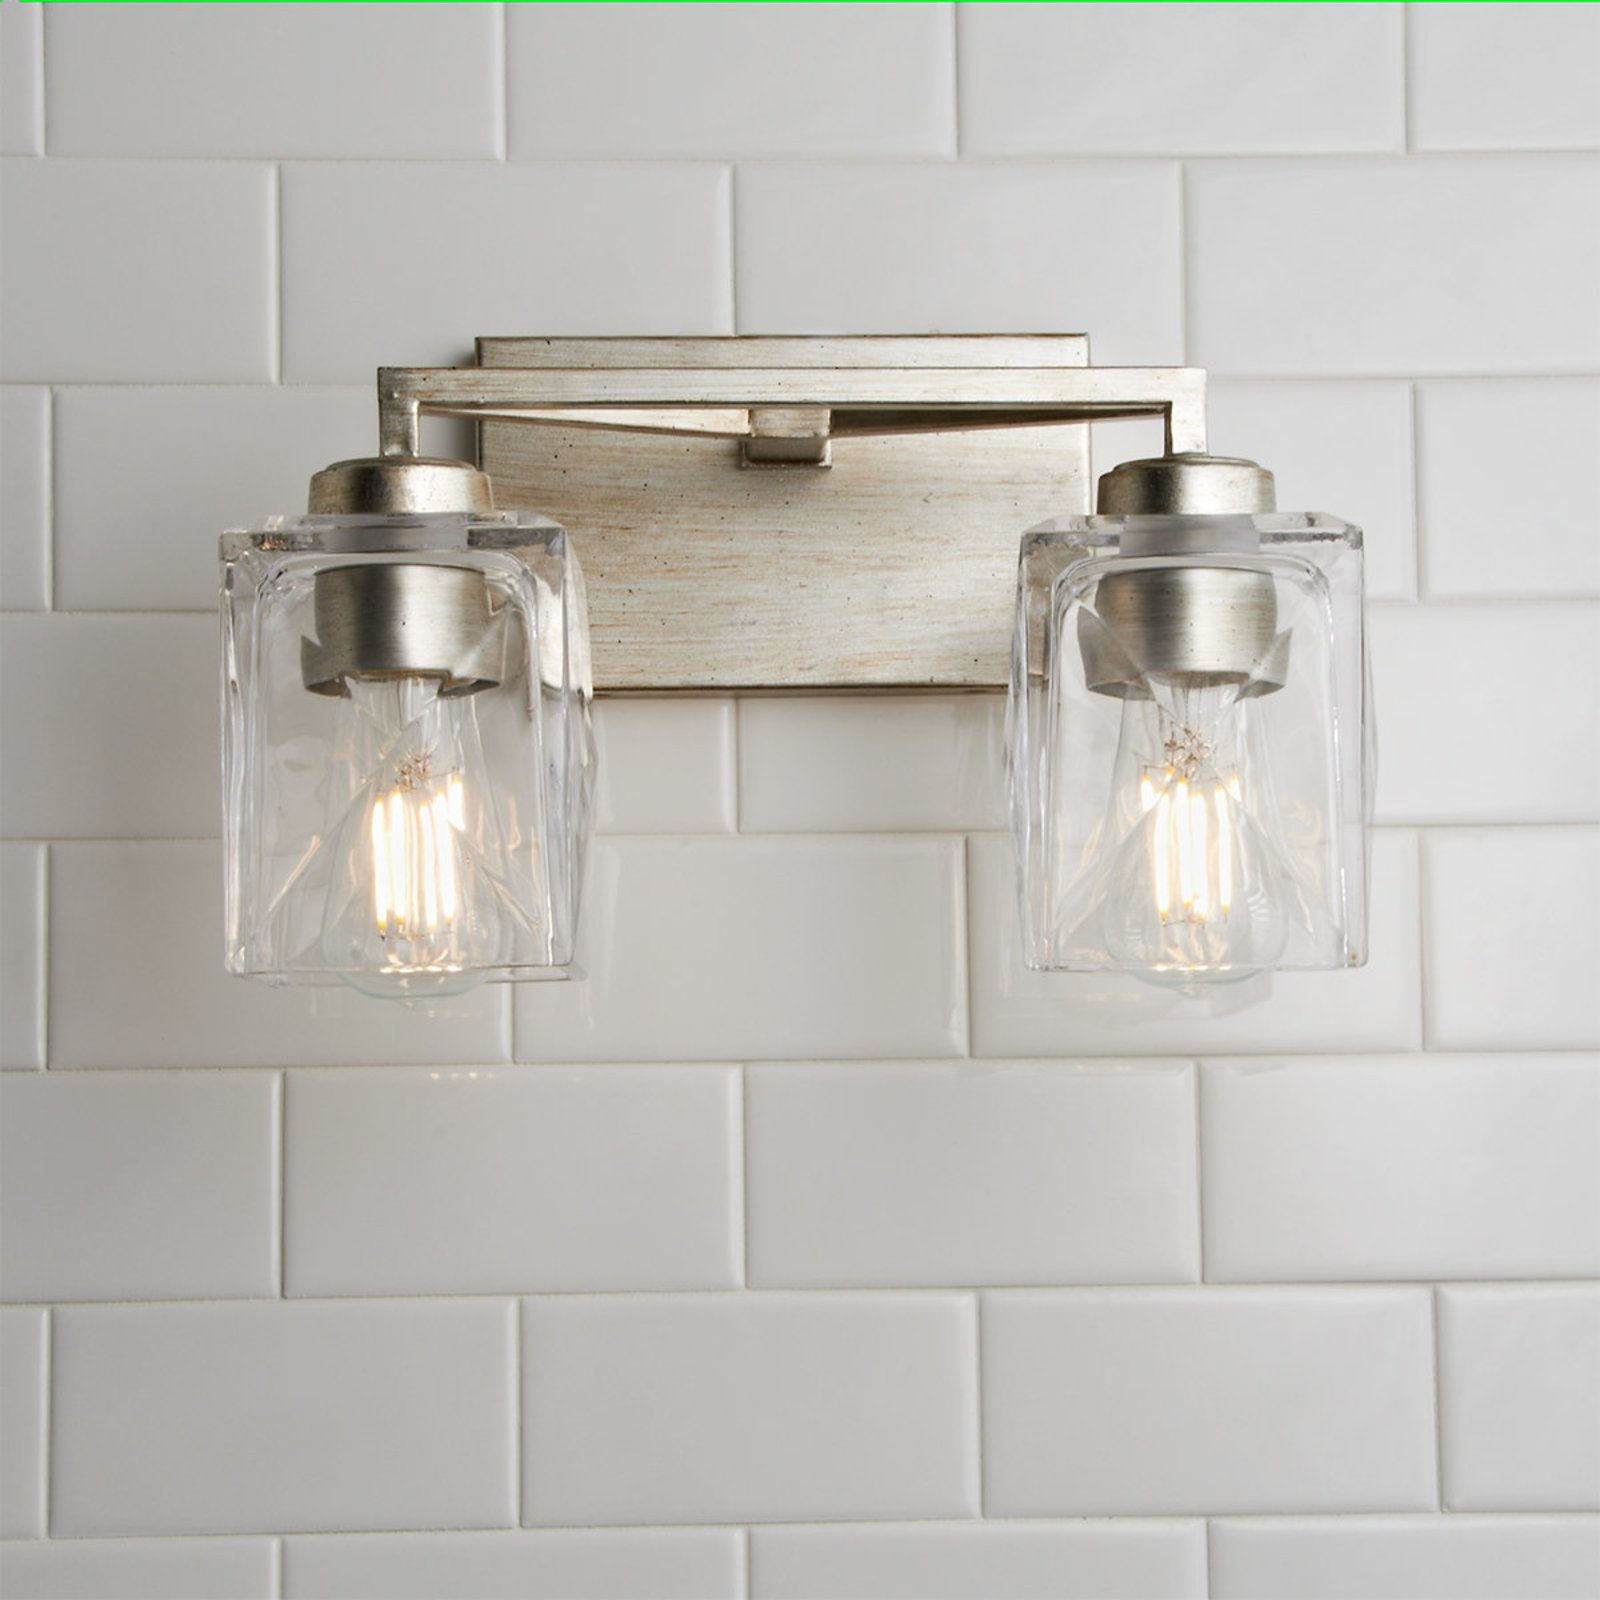 Faceted Square Glass Vanity Light 2 Light Shades Of Light Glass Vanity Vanity Lighting Rustic Light Fixtures